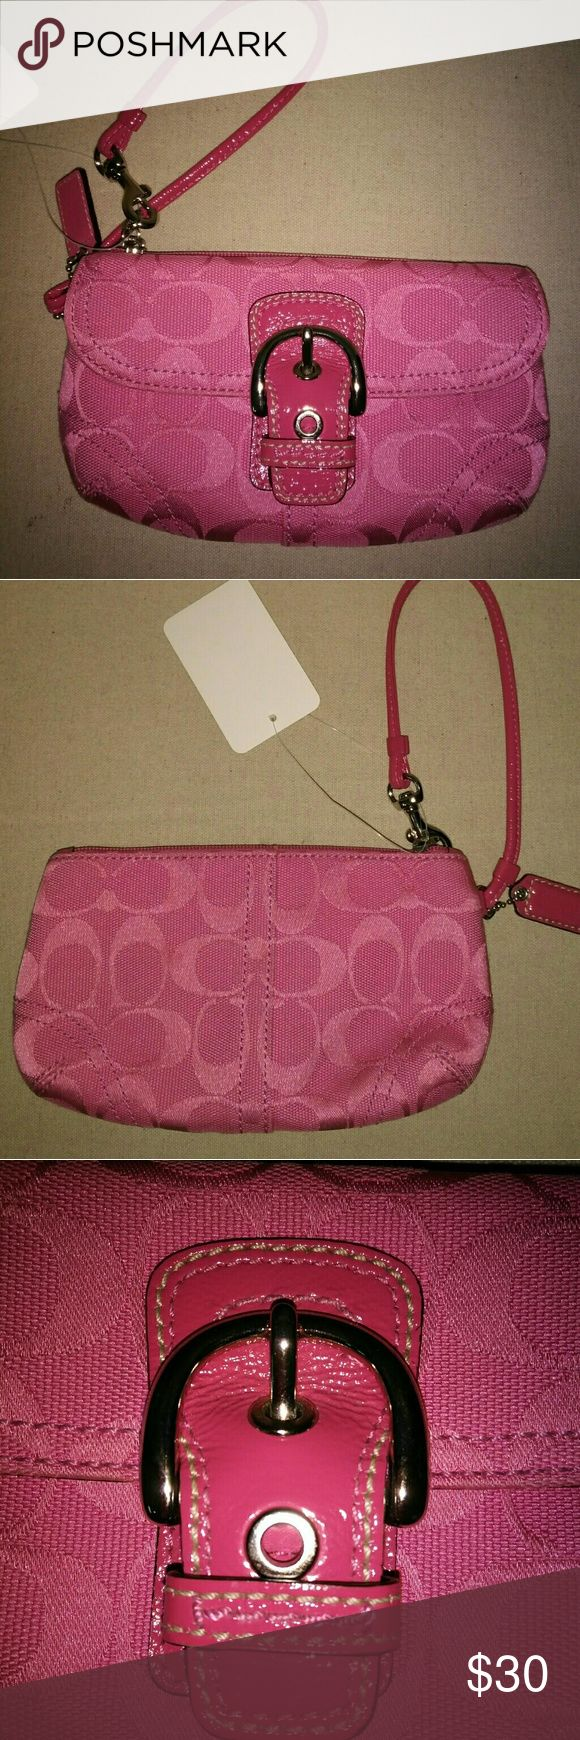 Lipstick Pink Authentic Coach Clutch/ Wristlet Great condition... Small coach clutch in a lipstick pink color... Excellent condition... Barely used... No stains or noticeable wear... Used 1-2x Coach Bags Clutches & Wristlets